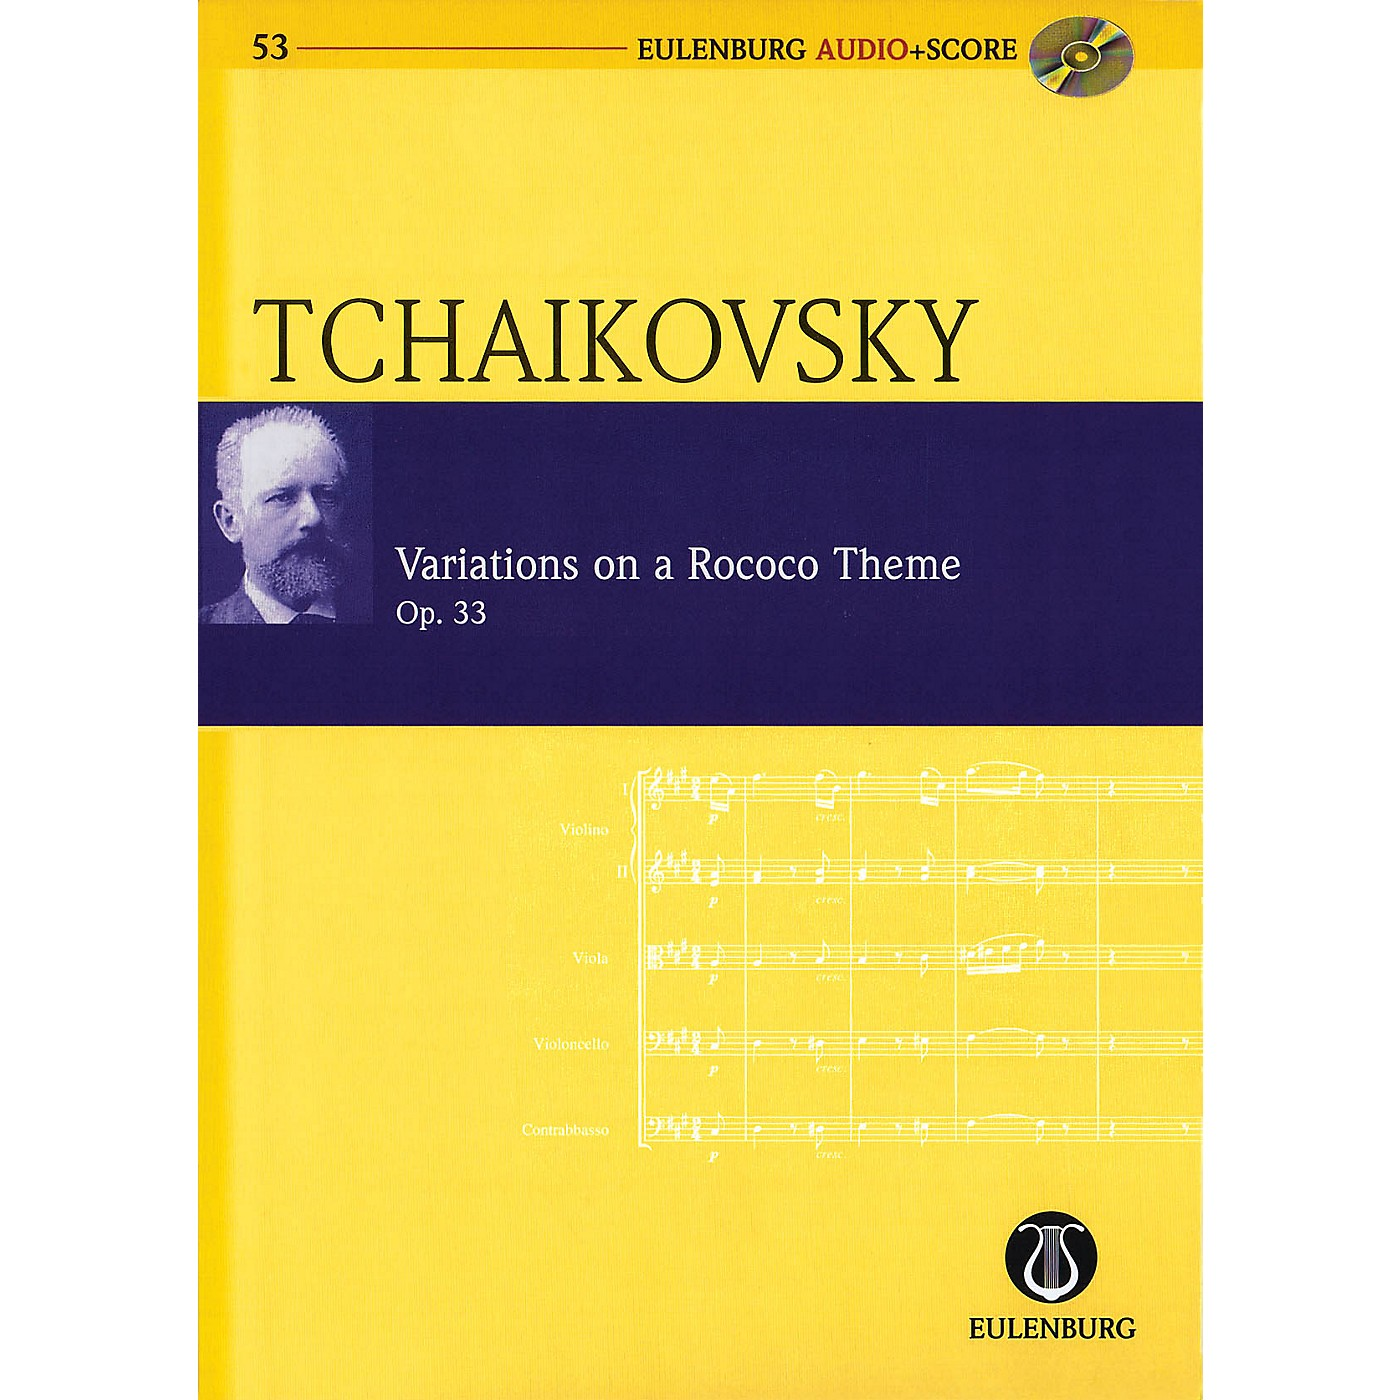 Eulenburg Variations on a Rococo Theme, Op. 33 Eulenberg Audio plus Score W/ CD by Tchaikovsky Edited by Kohlhase thumbnail